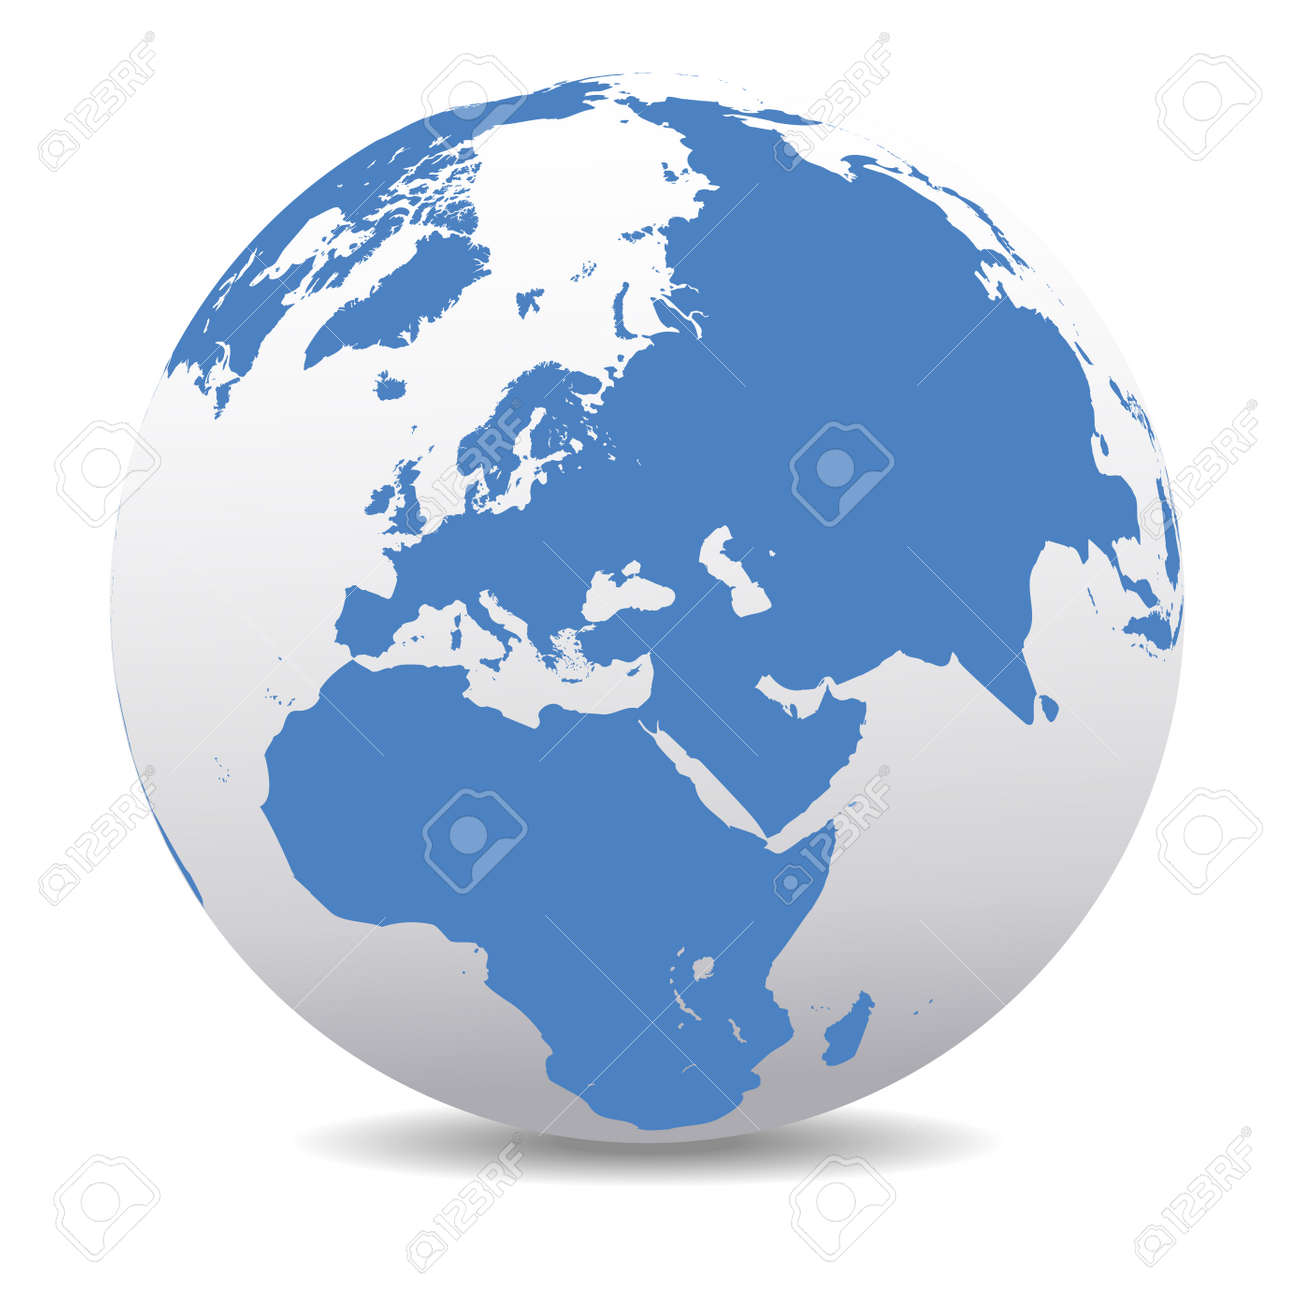 Middle East Russia Europe And Africa Global World Royalty Free